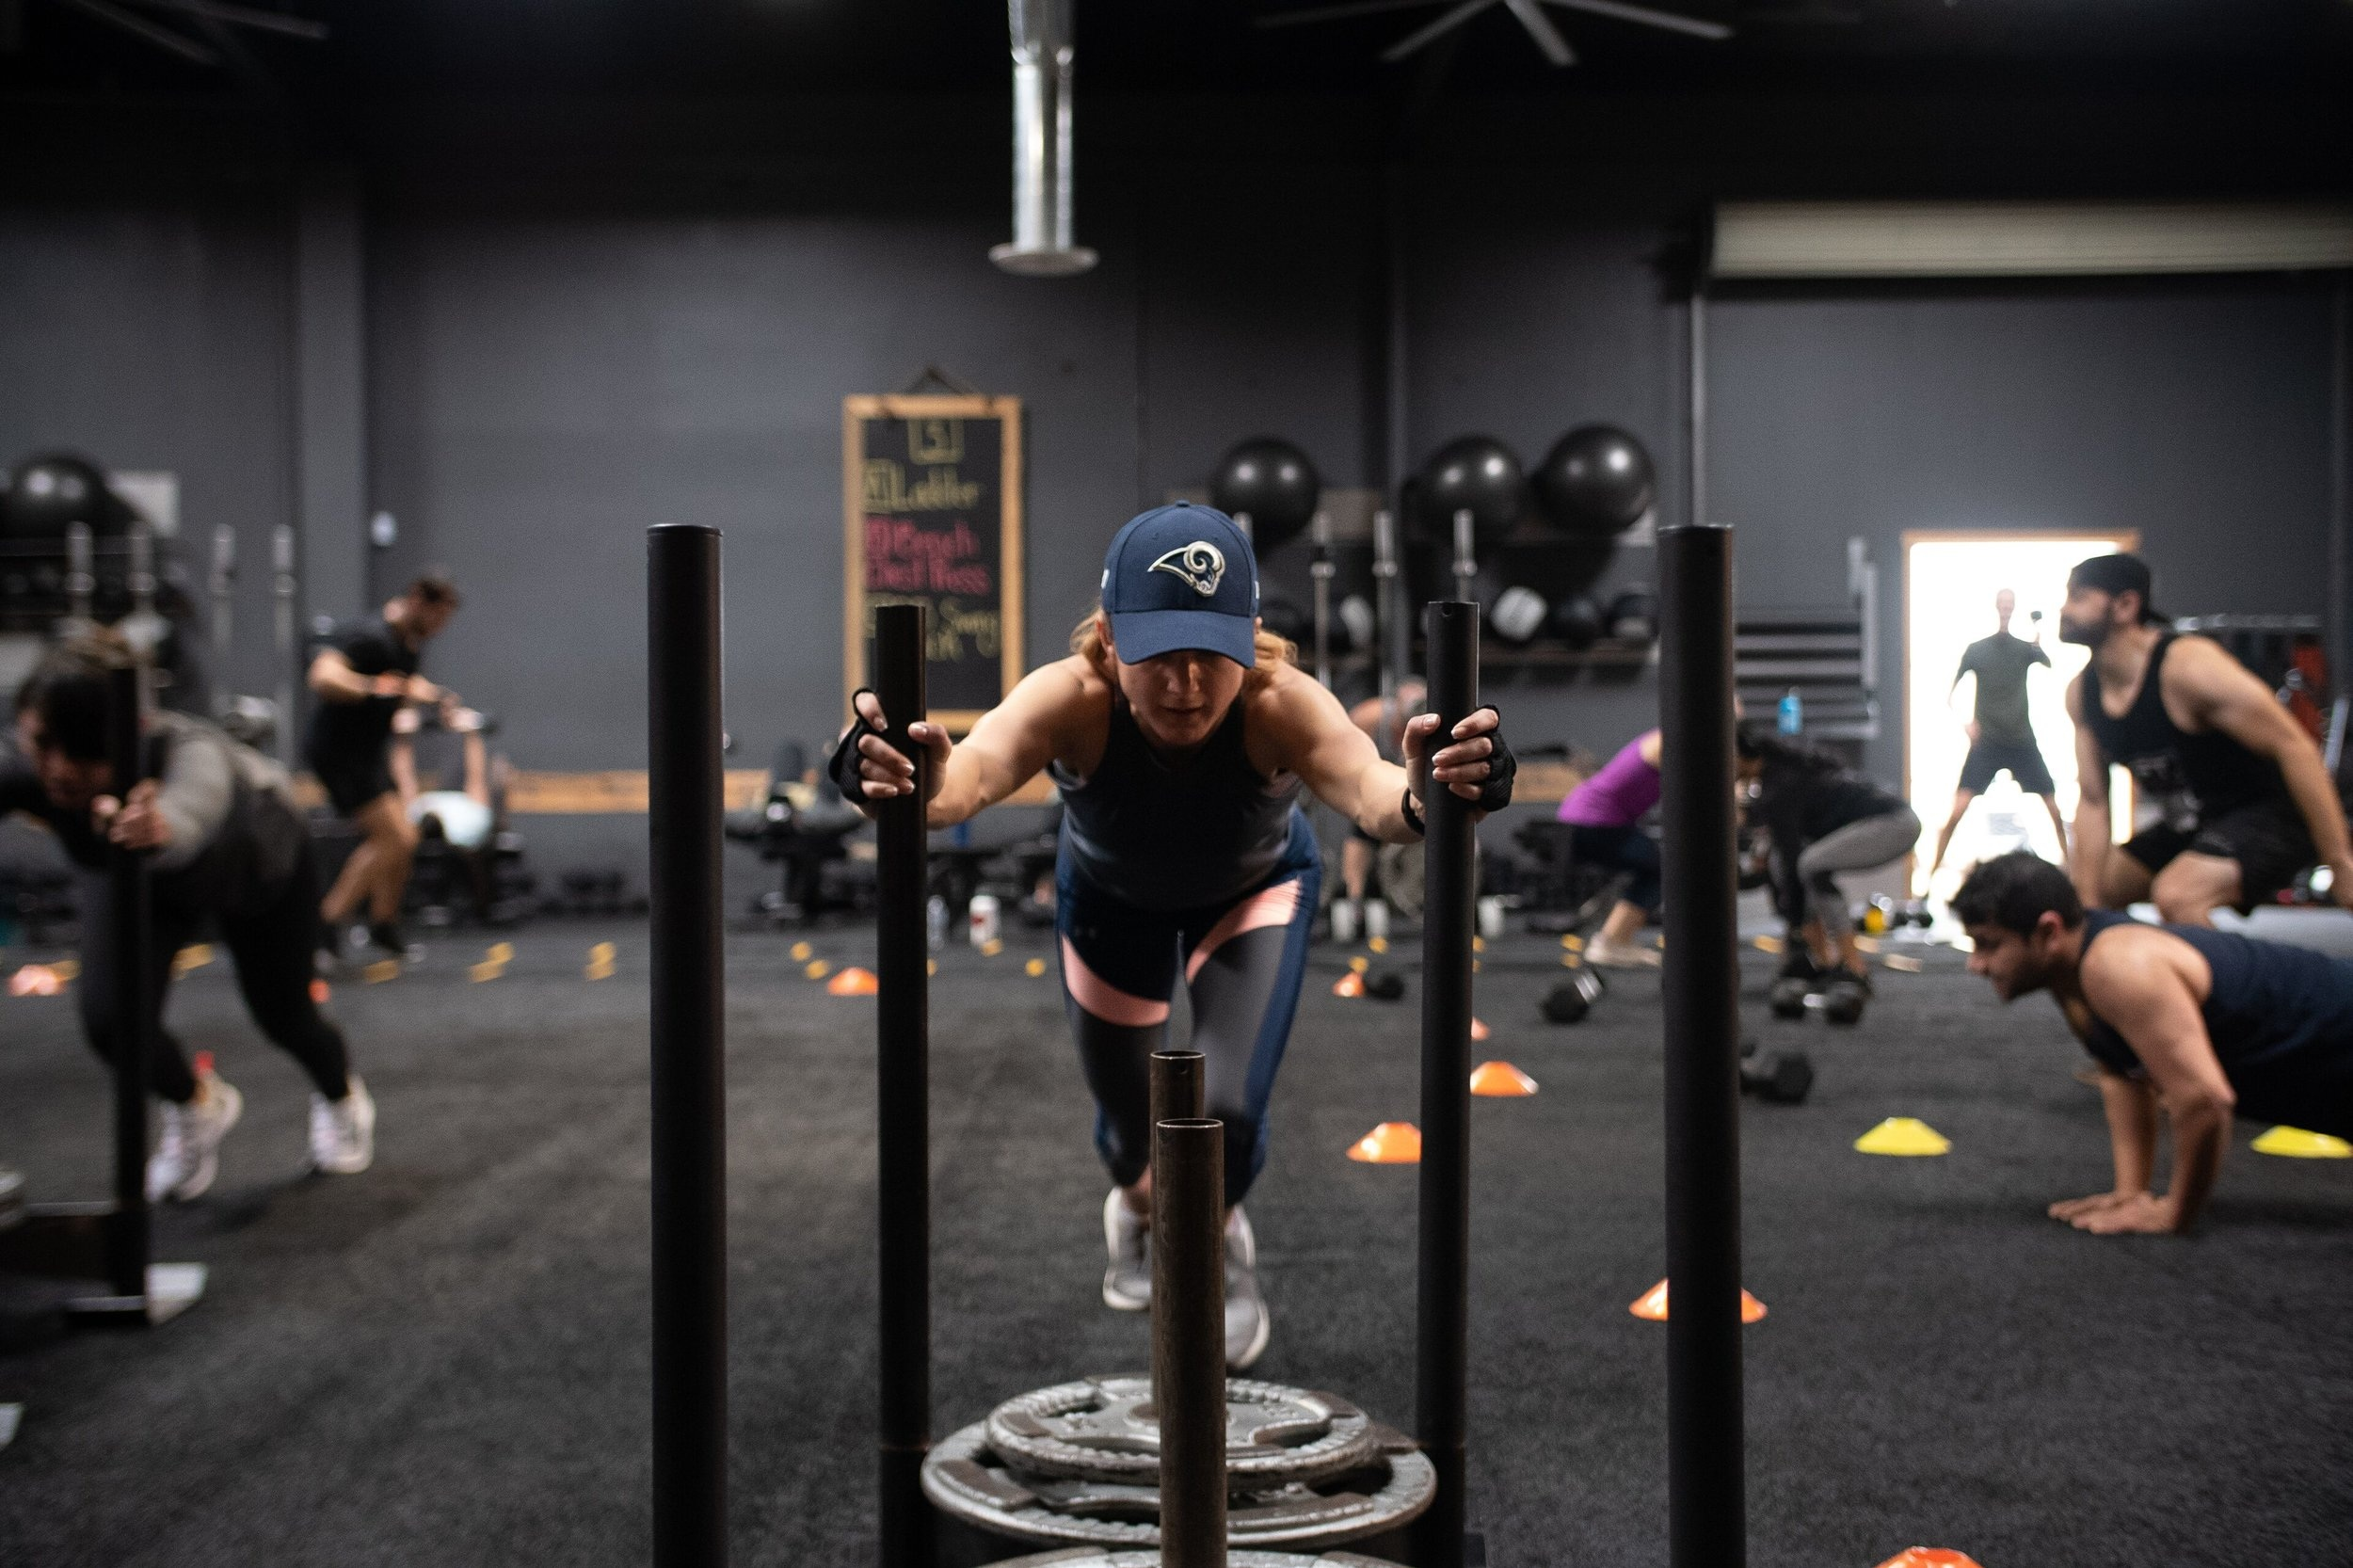 WORK Anywhere - WORK Anywhere is a carbon copy of the exact workouts we do each day in studio. Because of this, we suggest having access to the following pieces of equipment for this program: barbells, dumbbells, bands (or cable machines), mini bands, sleds, balls, gliders, and battle ropes.